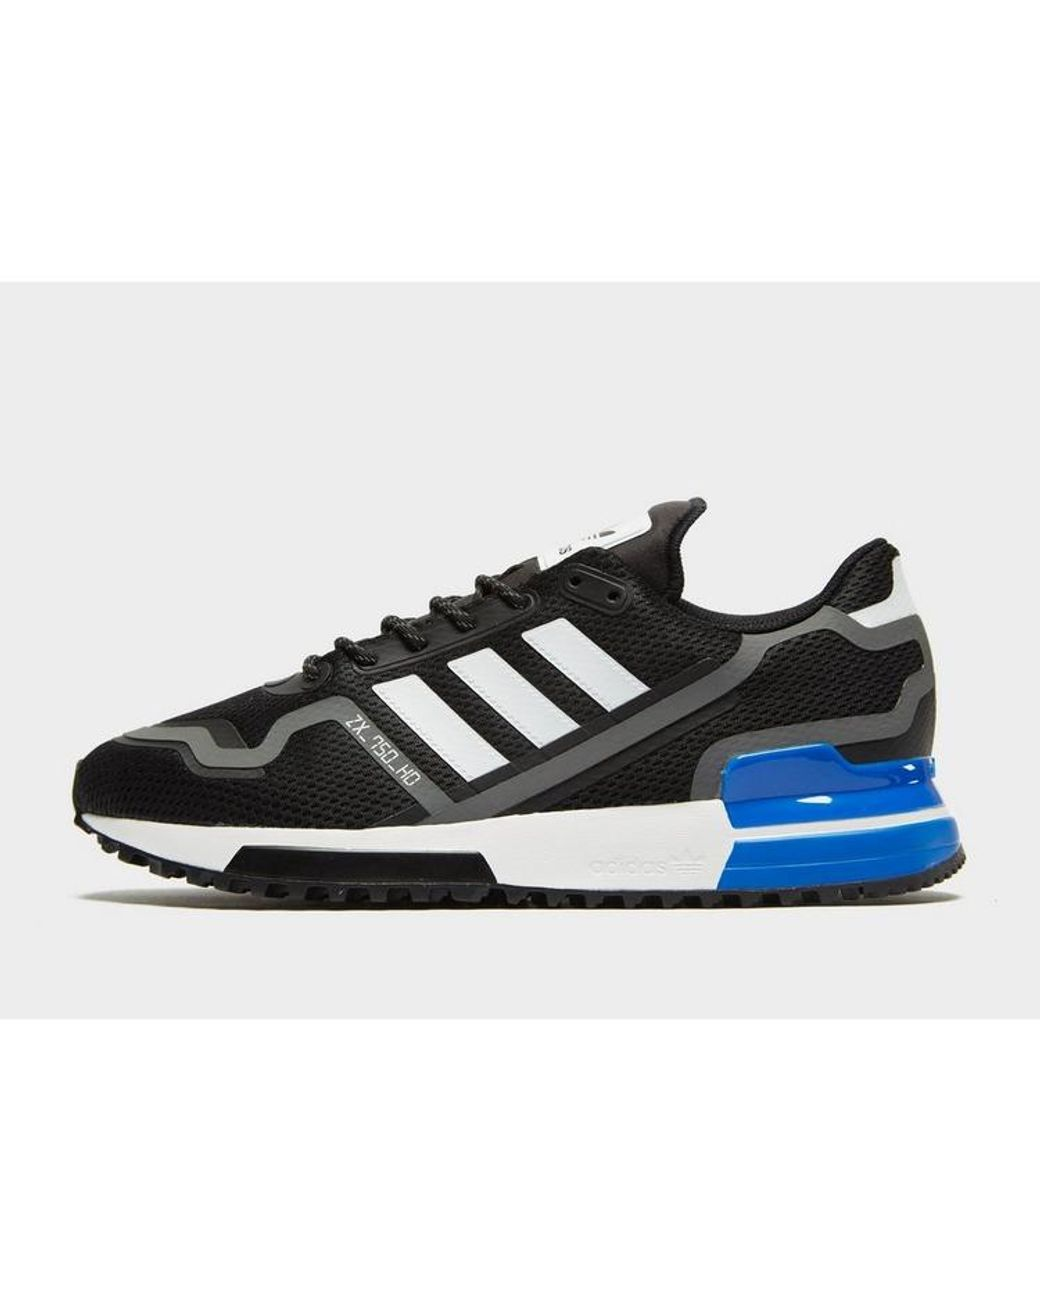 adidas zx 750 trainers black-green-yellow-red